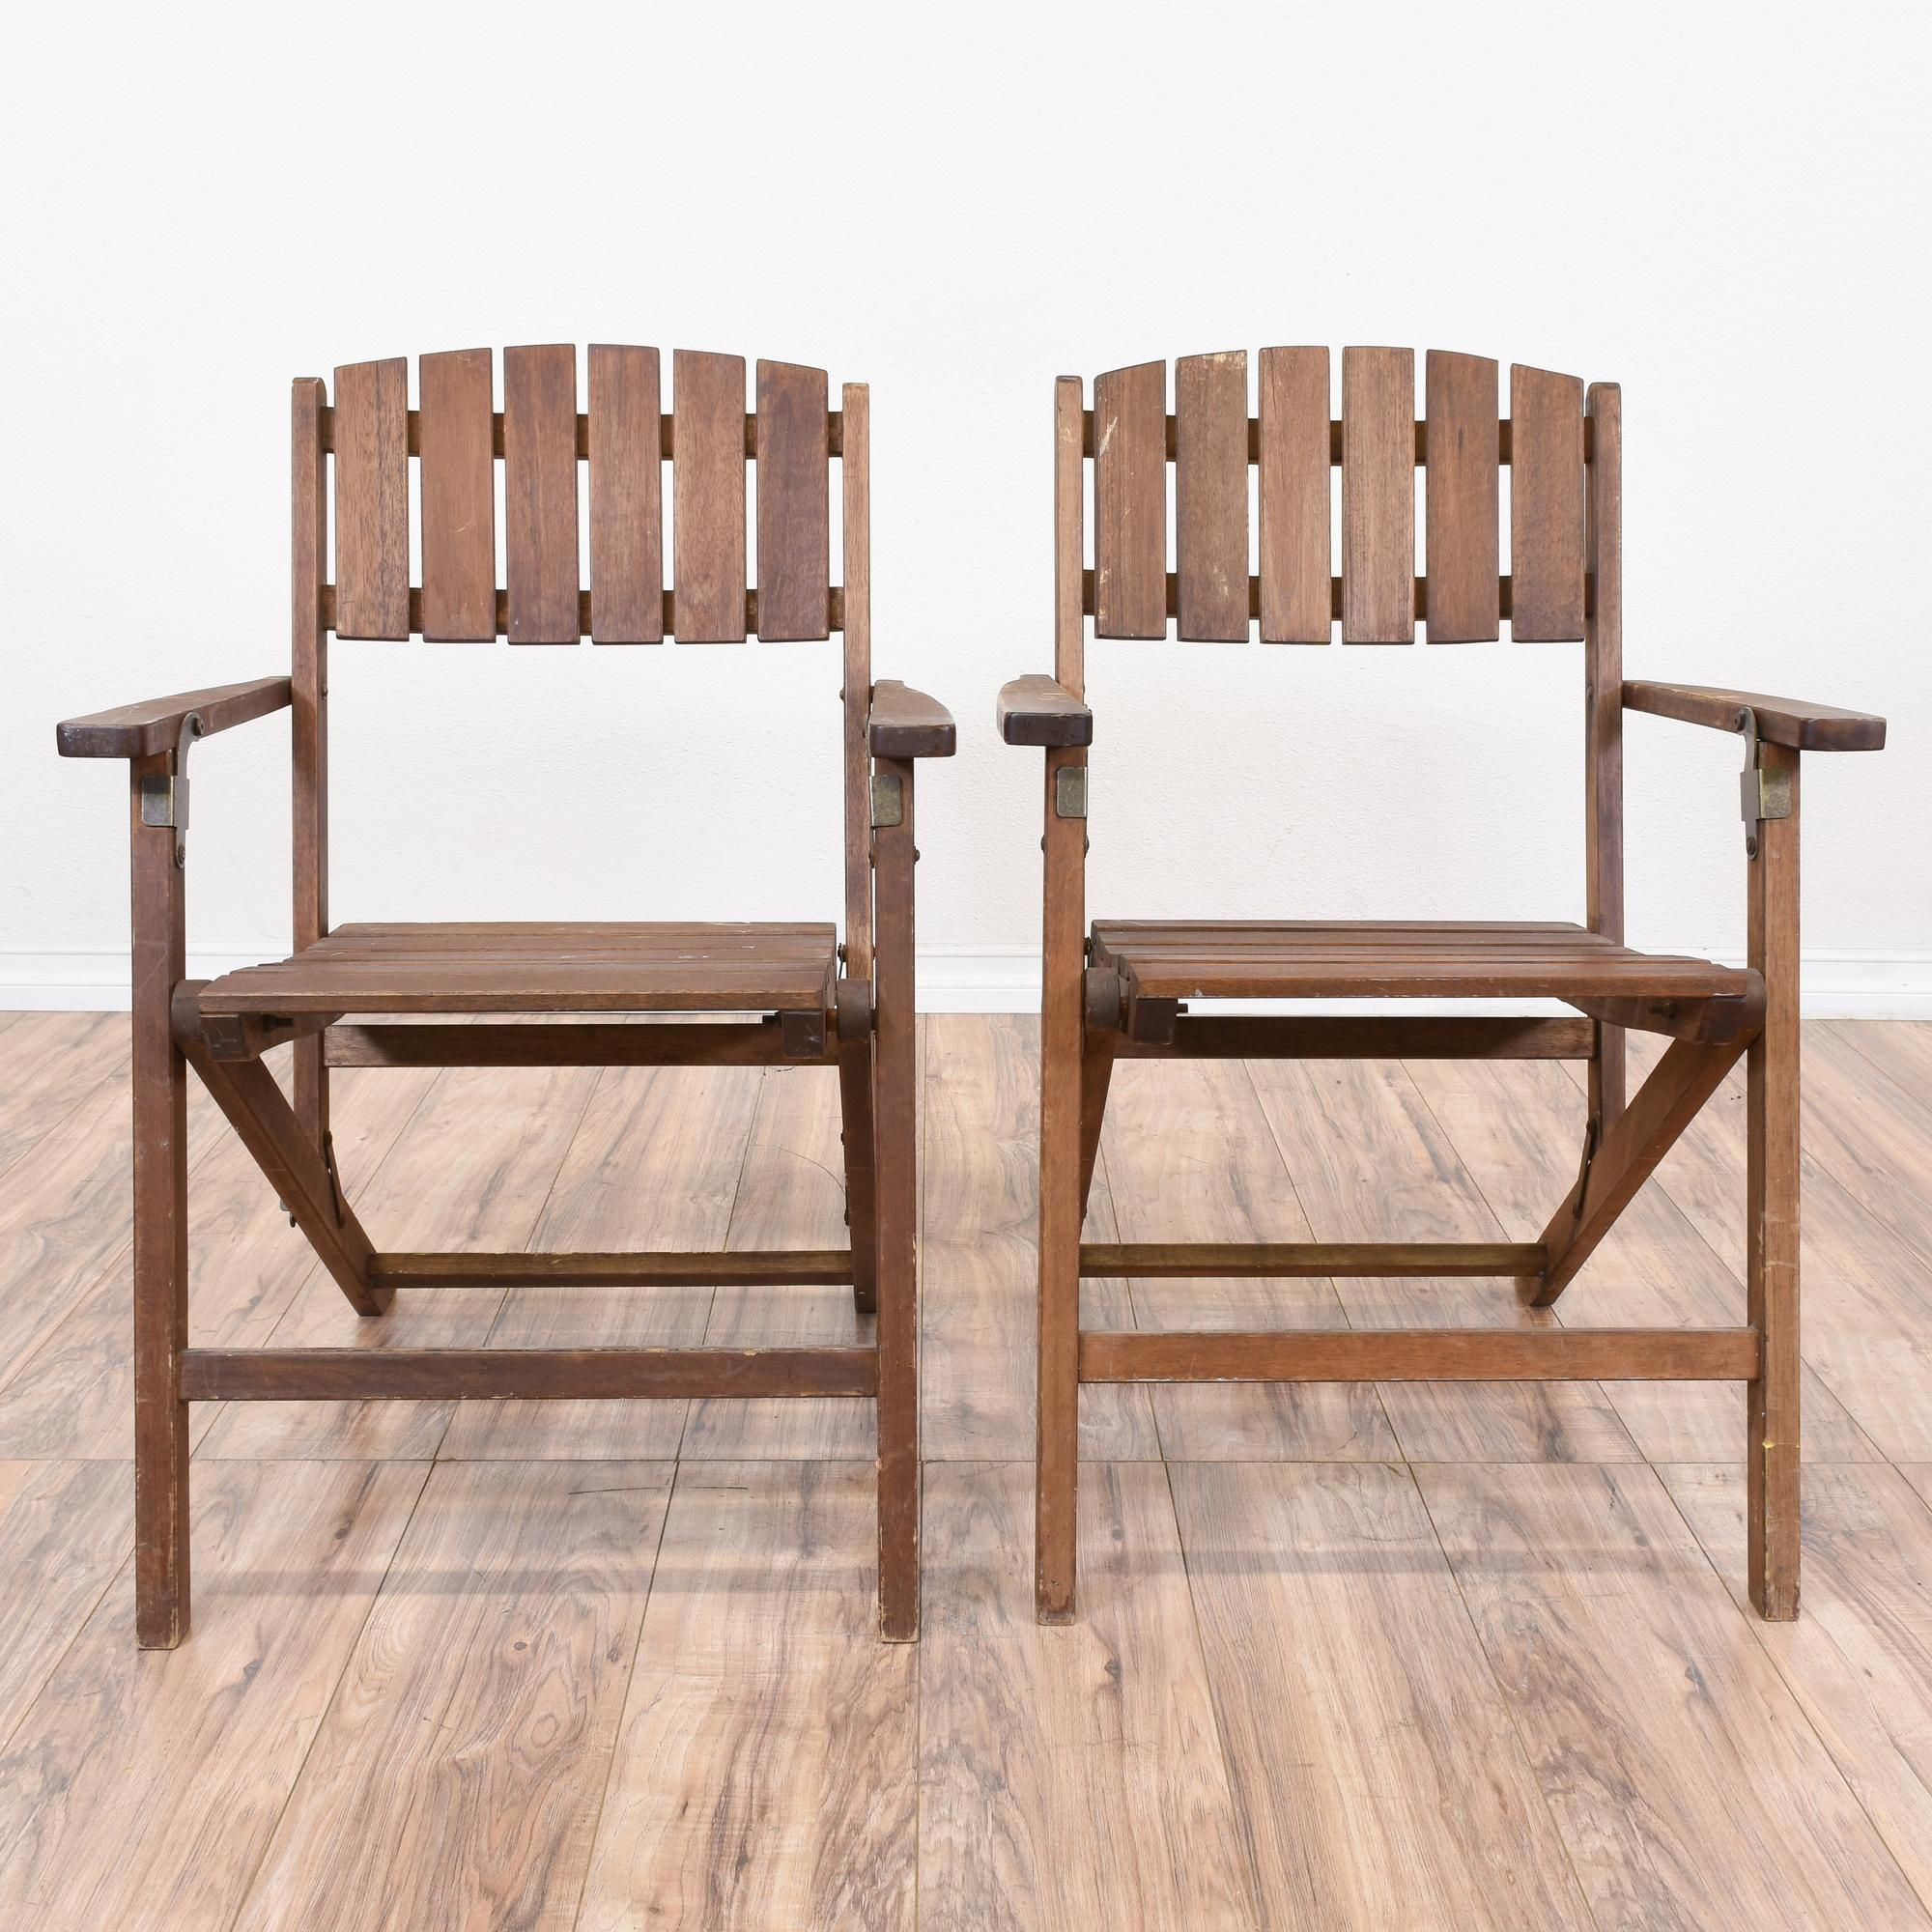 Pair Folding Wood Slat Outdoor Chairs